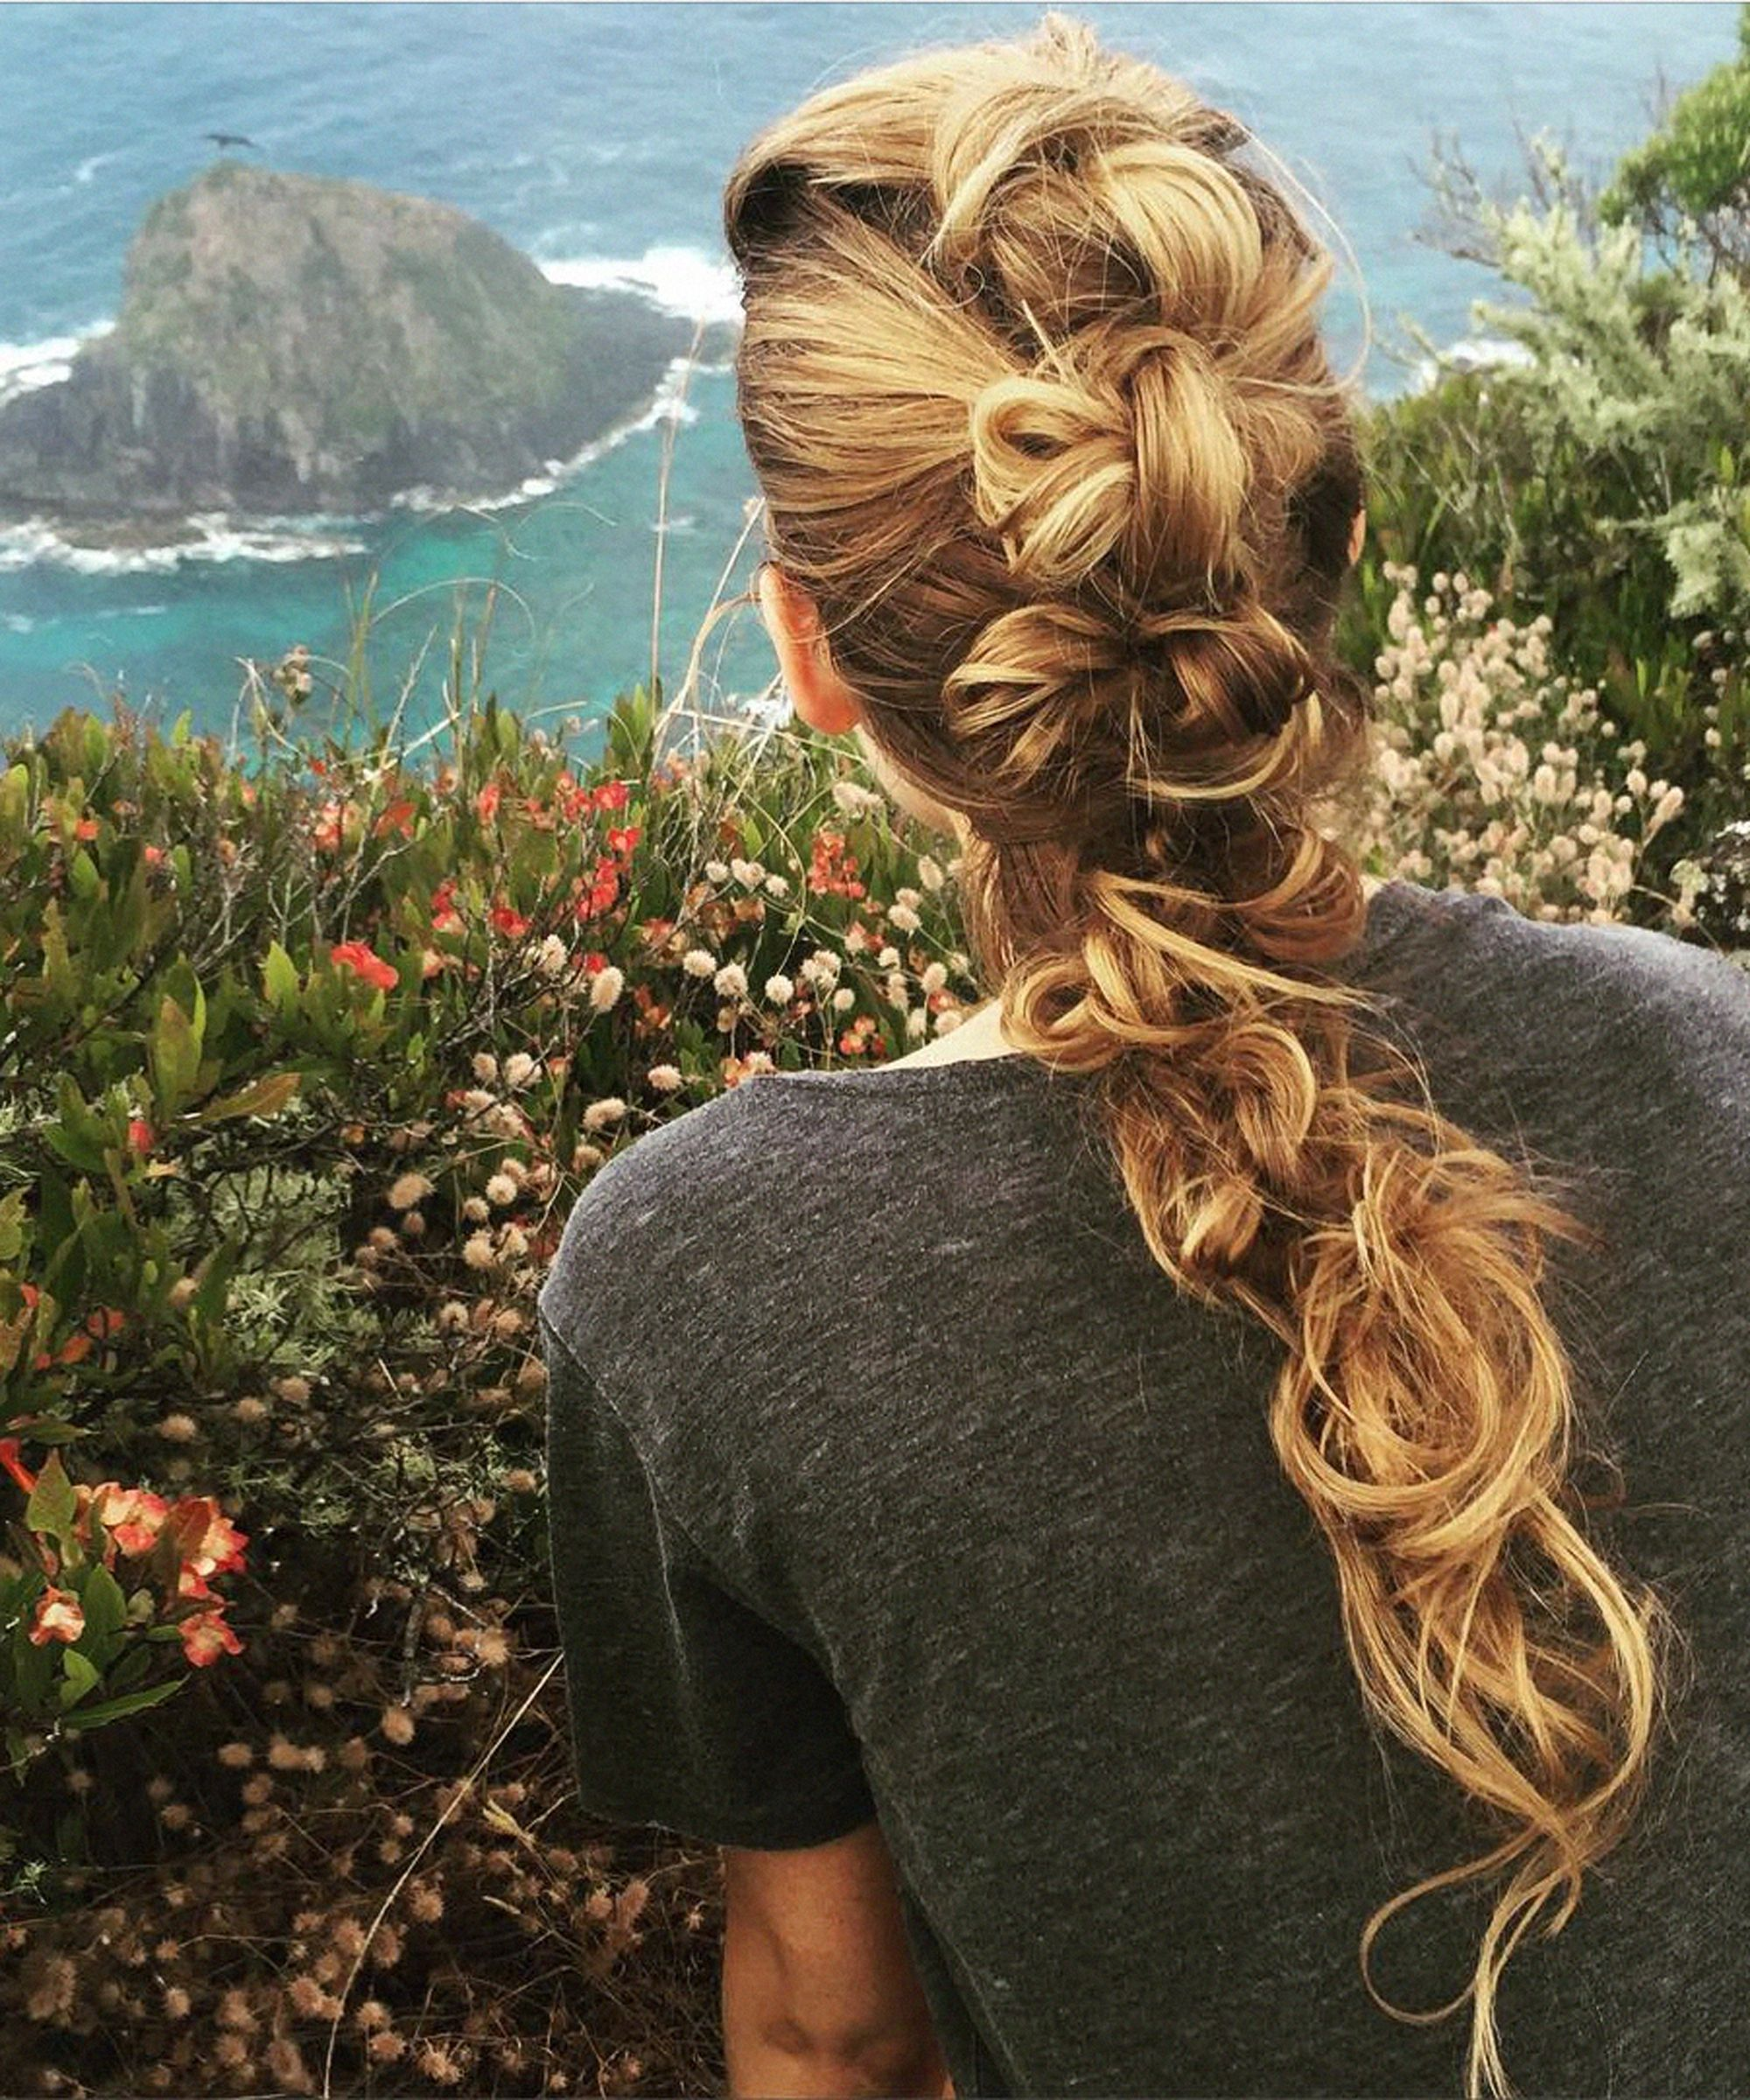 Blake Lively Hiking Braid Tutorial | Blake Lively's hairstylist, Rod Ortega, shares all the details on her beautiful braid.